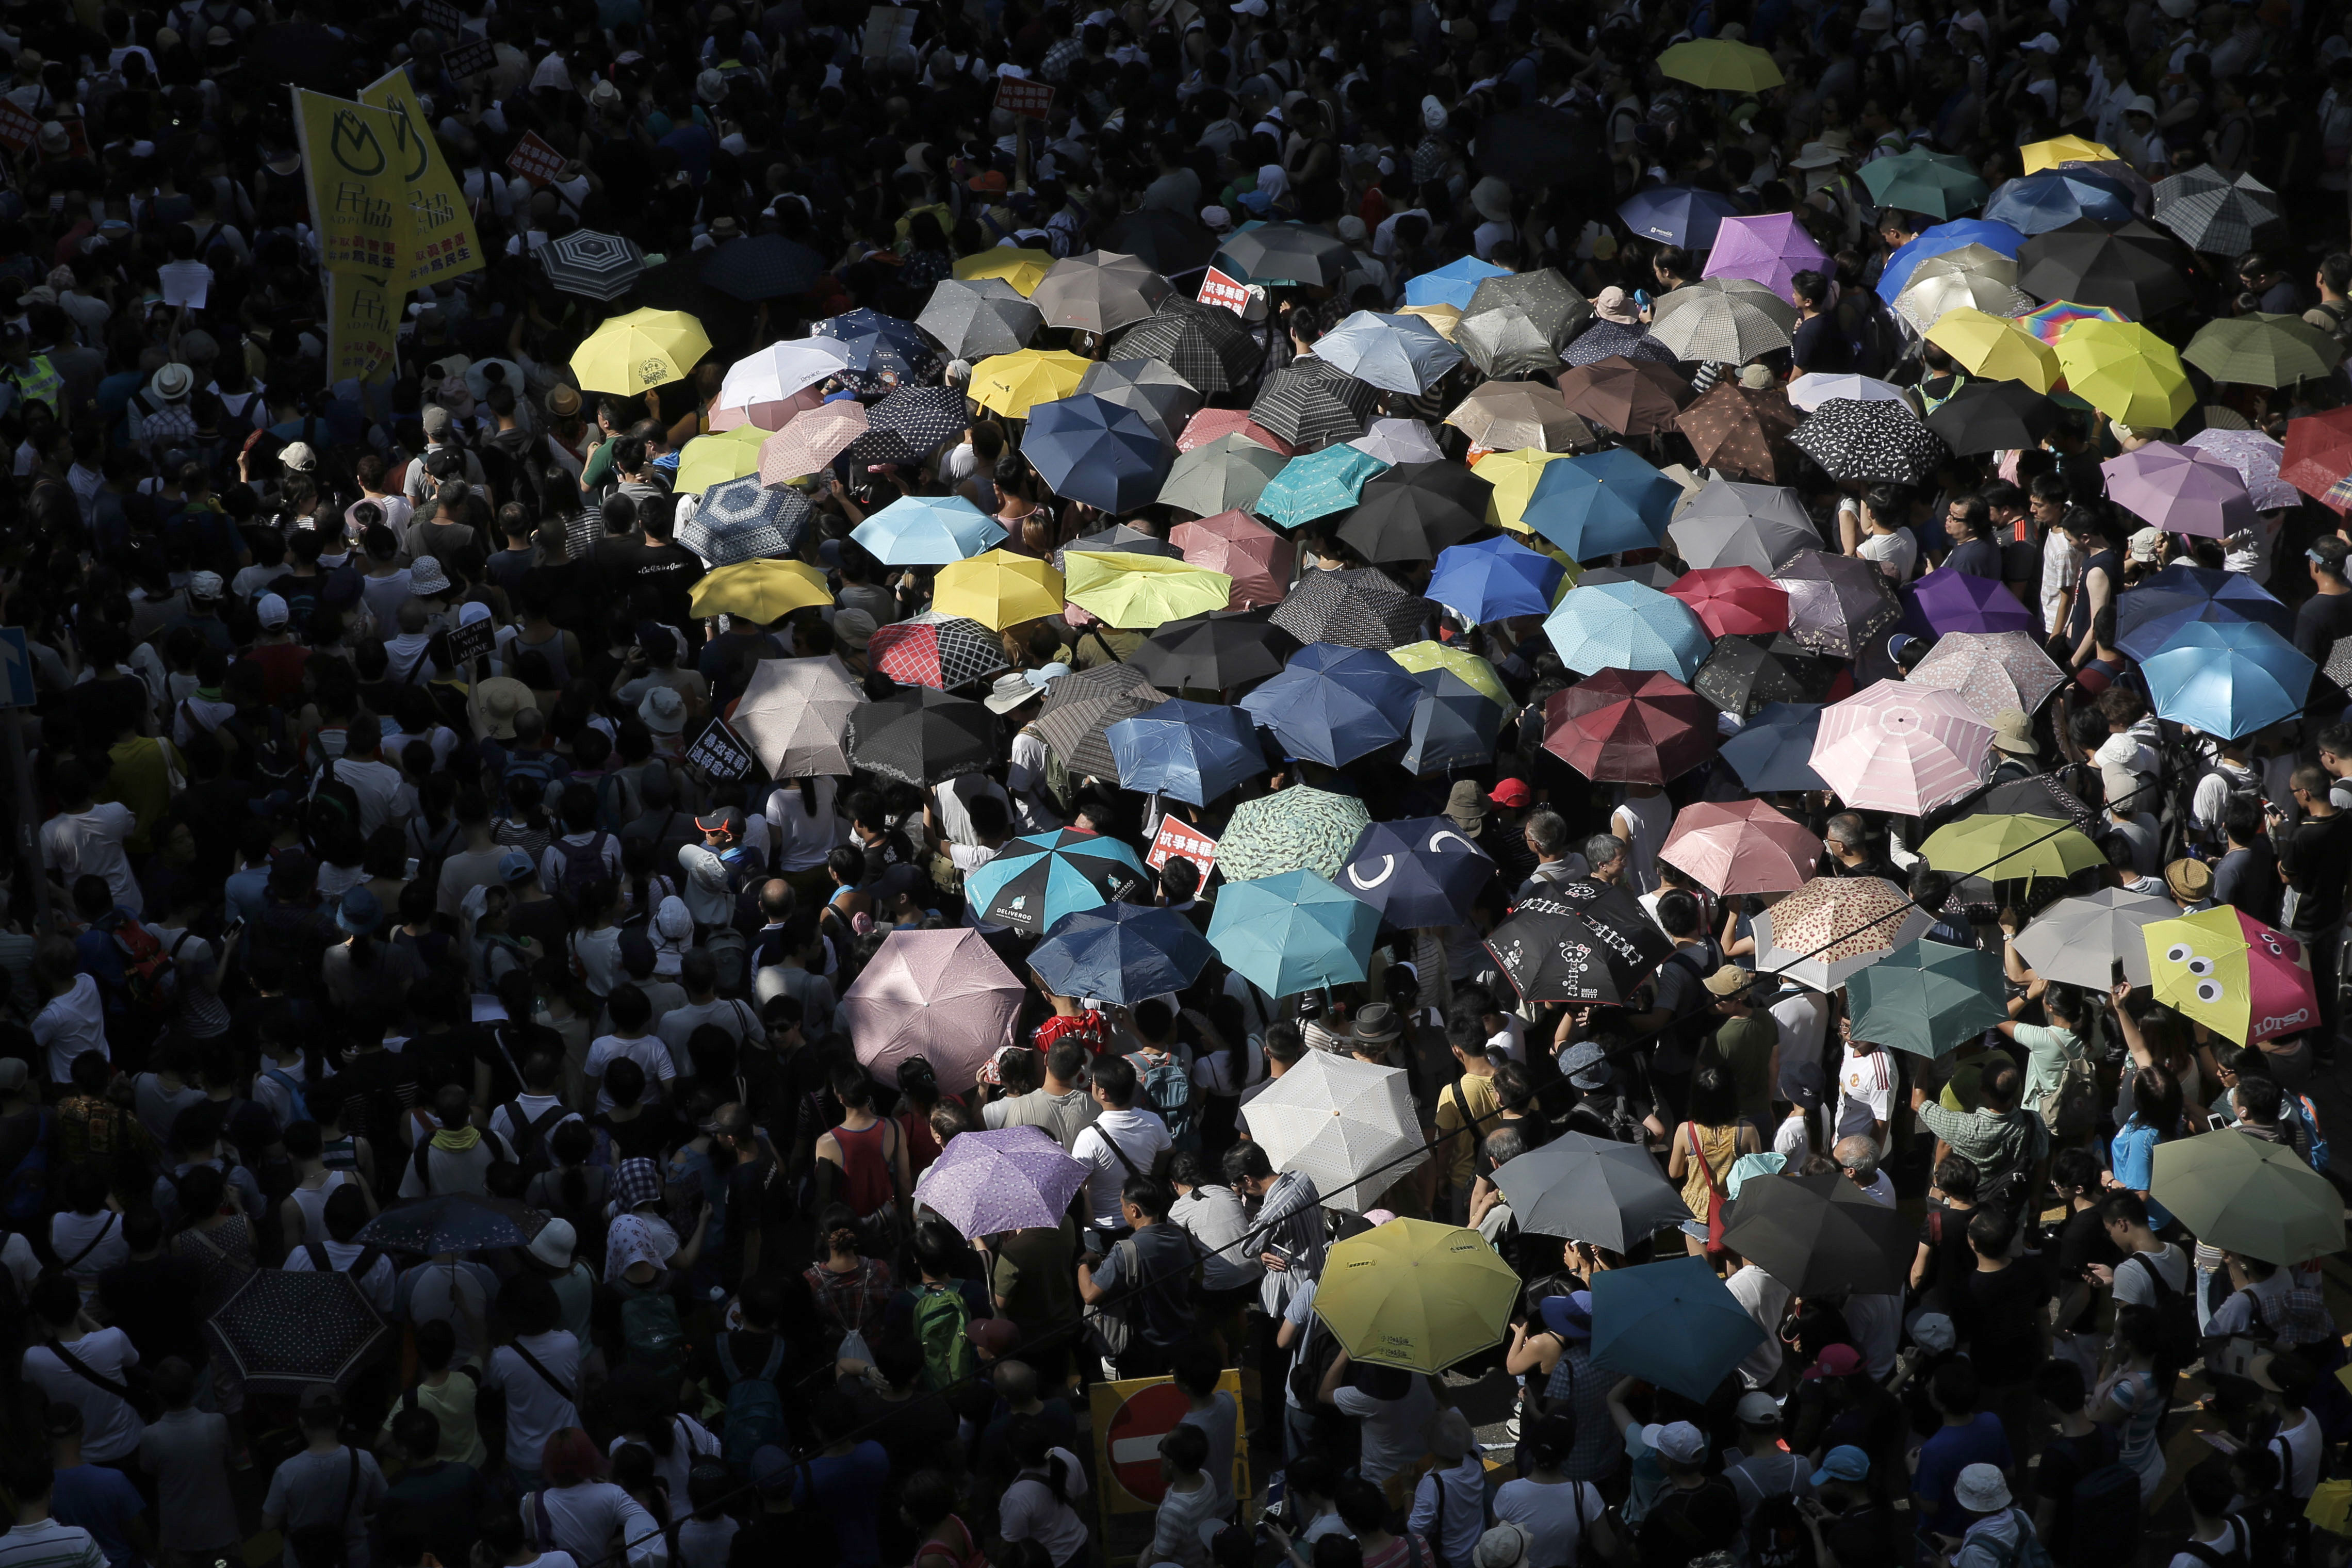 Protesters attend a rally to support young activists Joshua Wong, Nathan Law and Alex Chow in downtown Hong Kong on Aug. 20, 2017.